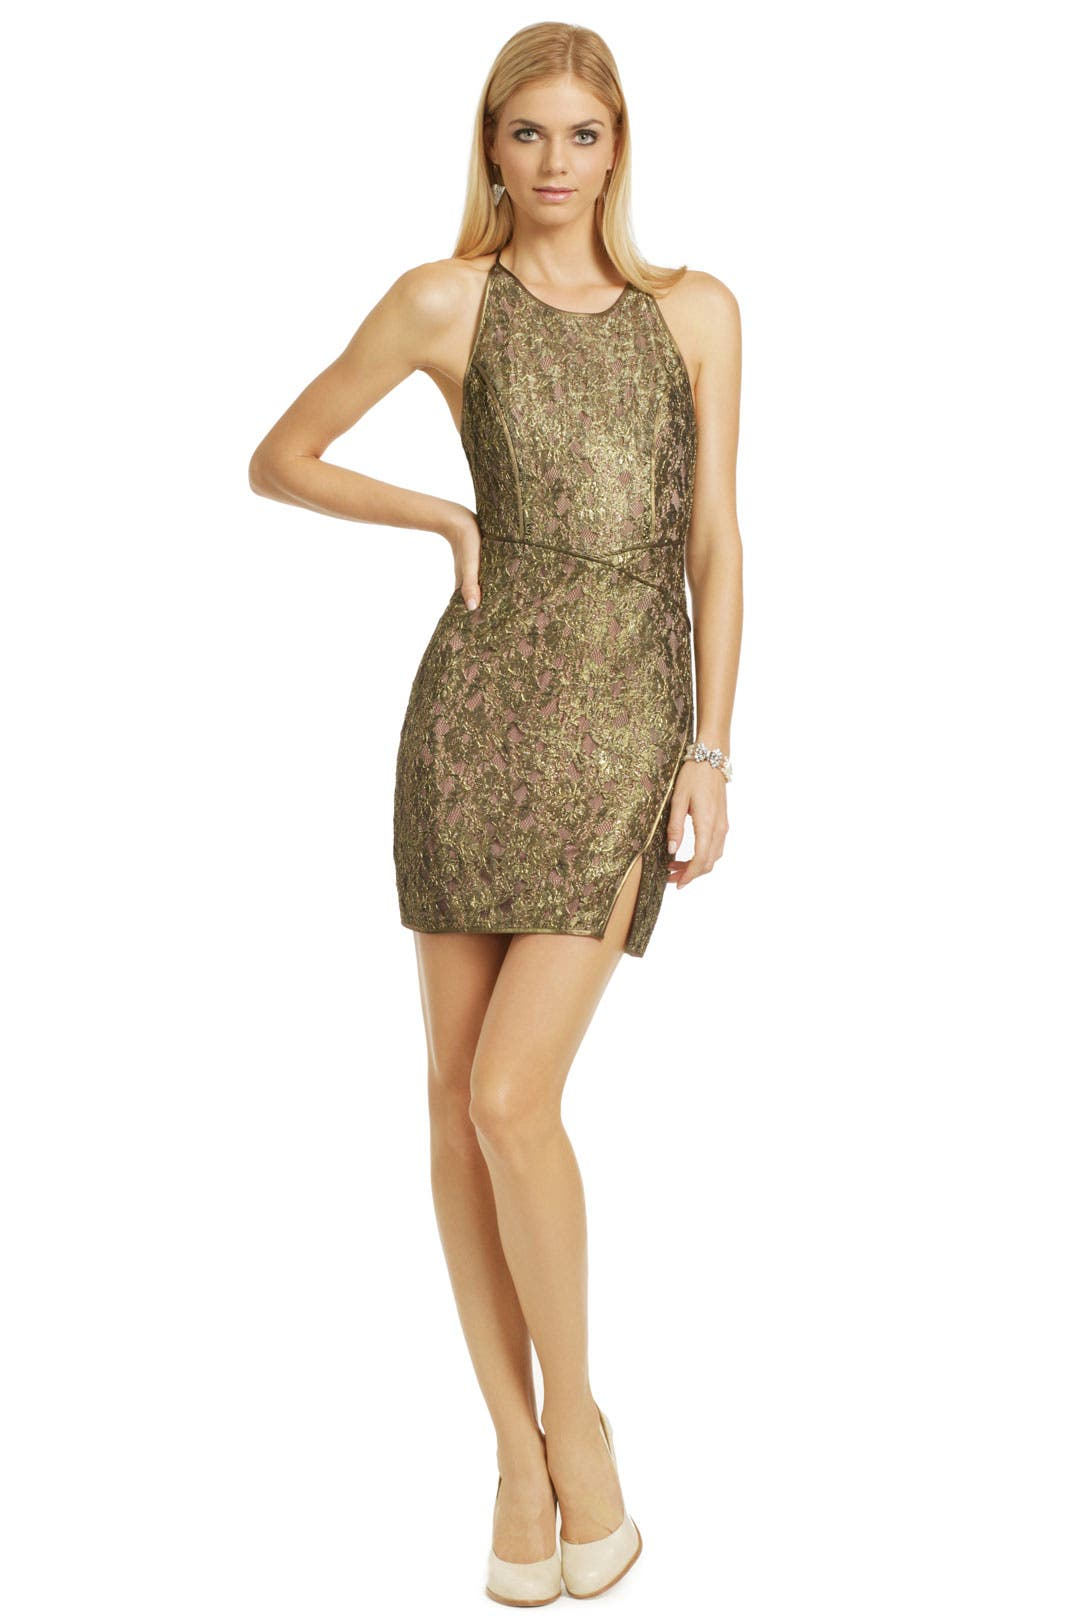 Party Dresses - BCBGMaxazria Got Him Hooked Dress from Rent The Runway